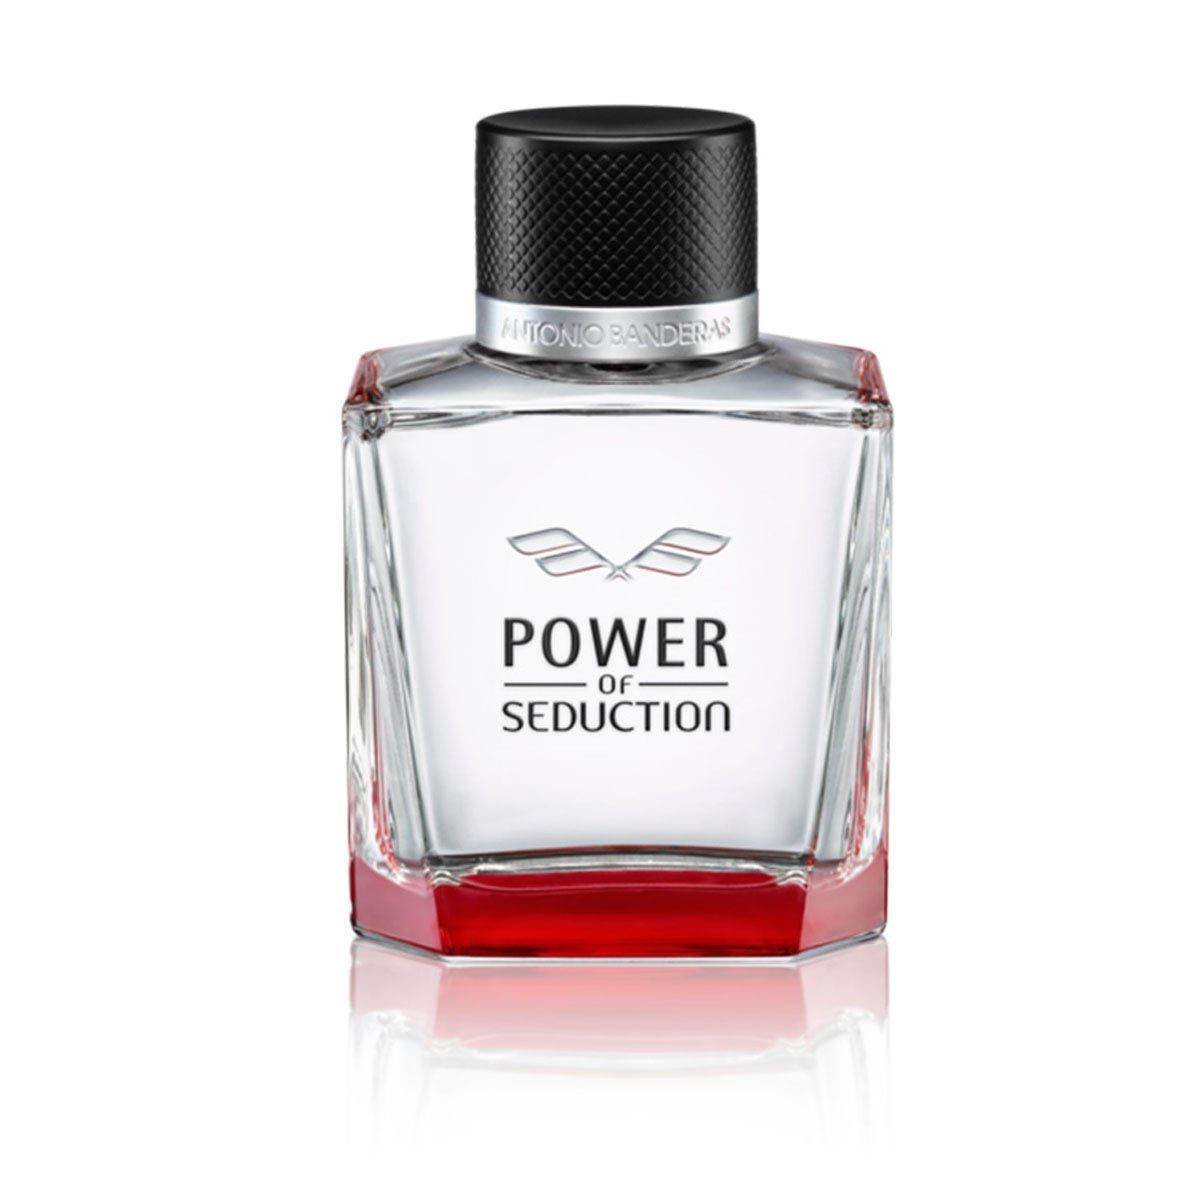 Tualetinis vanduo Antonio Banderas Power of Seduction EDT vyrams 100 ml